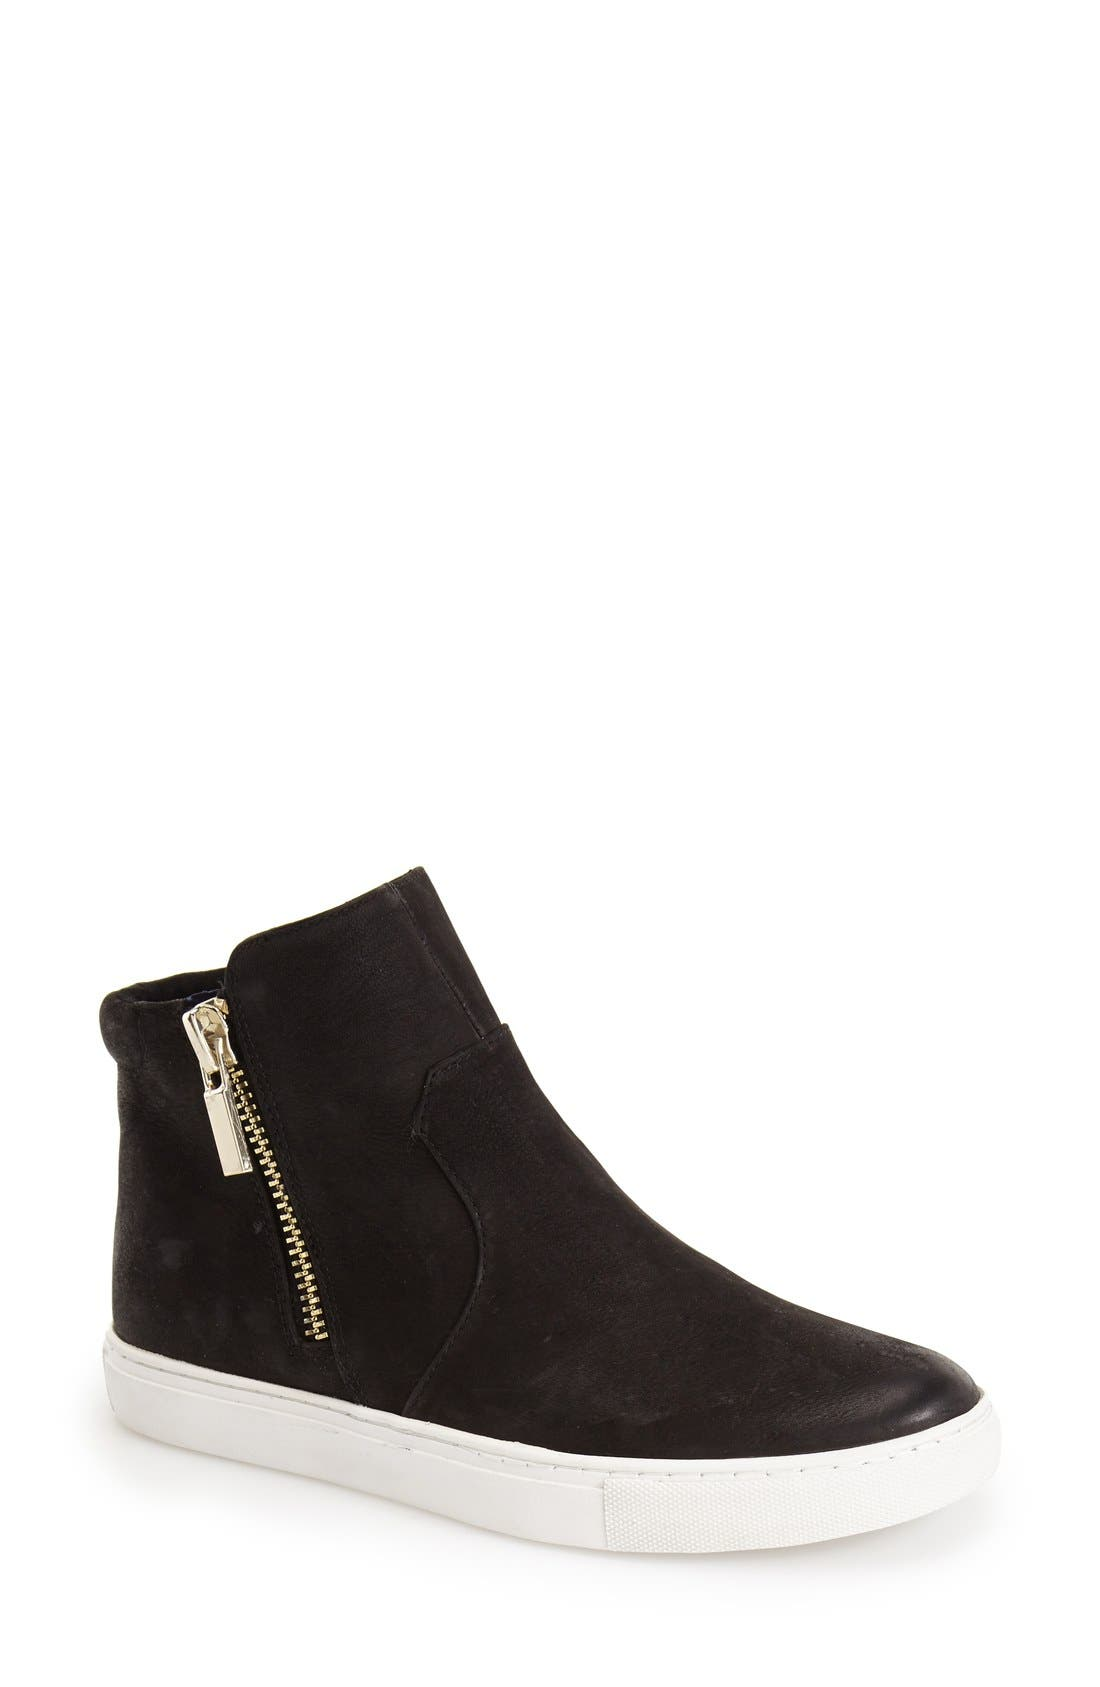 Main Image - Kenneth Cole New York 'Kiera' Zip High Top Sneaker (Women